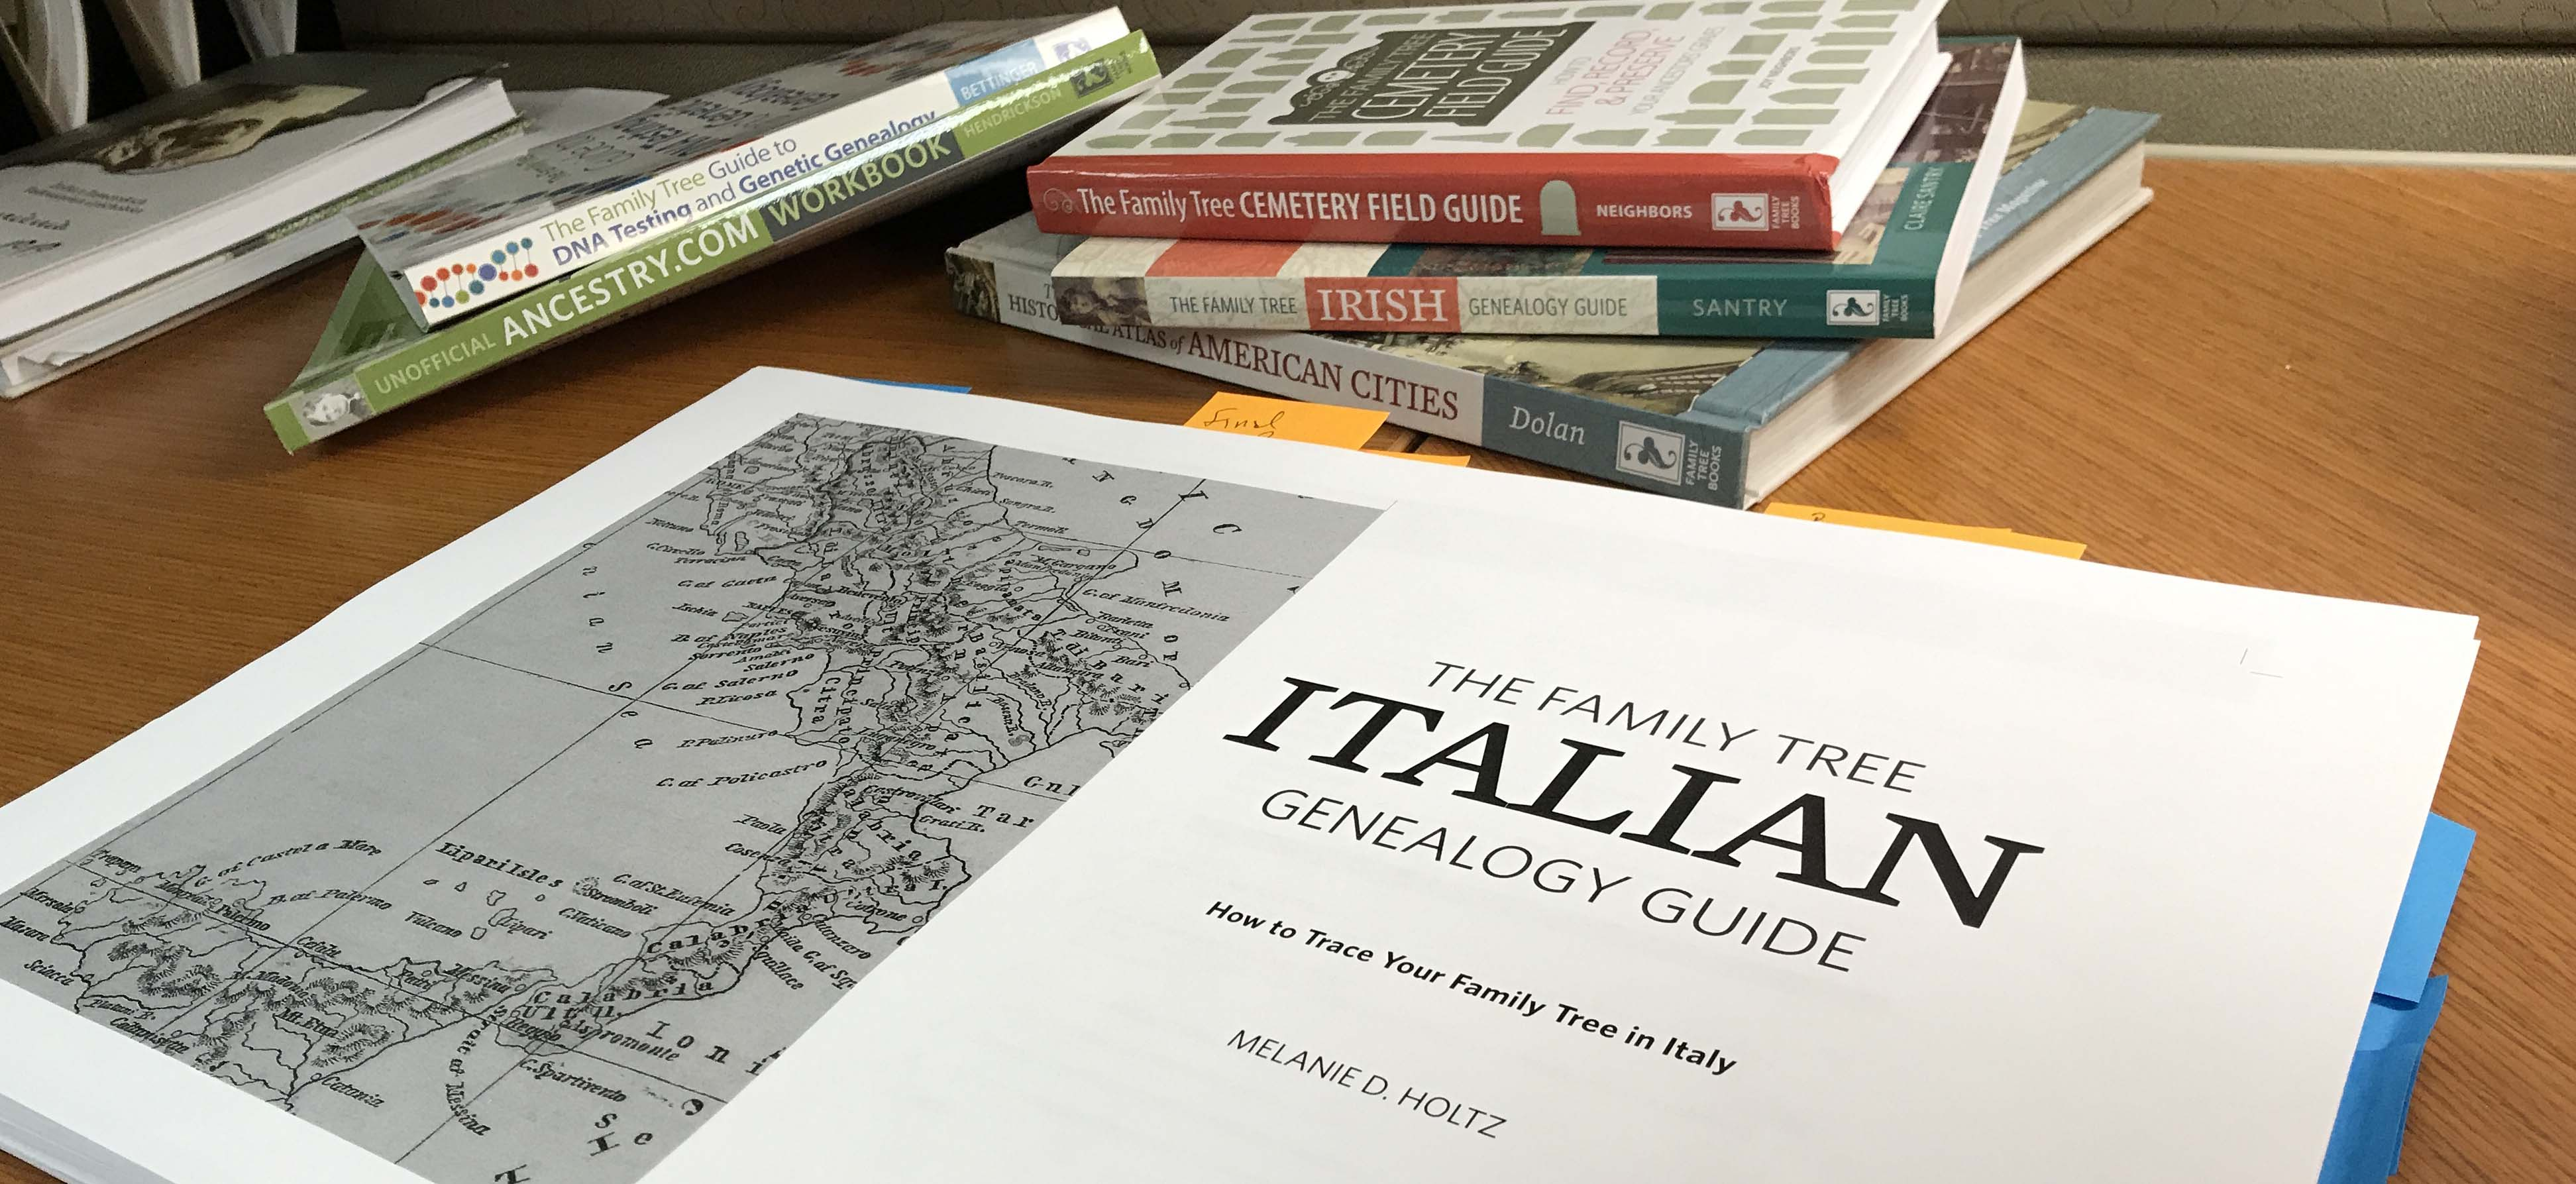 italian guide, genealogy books